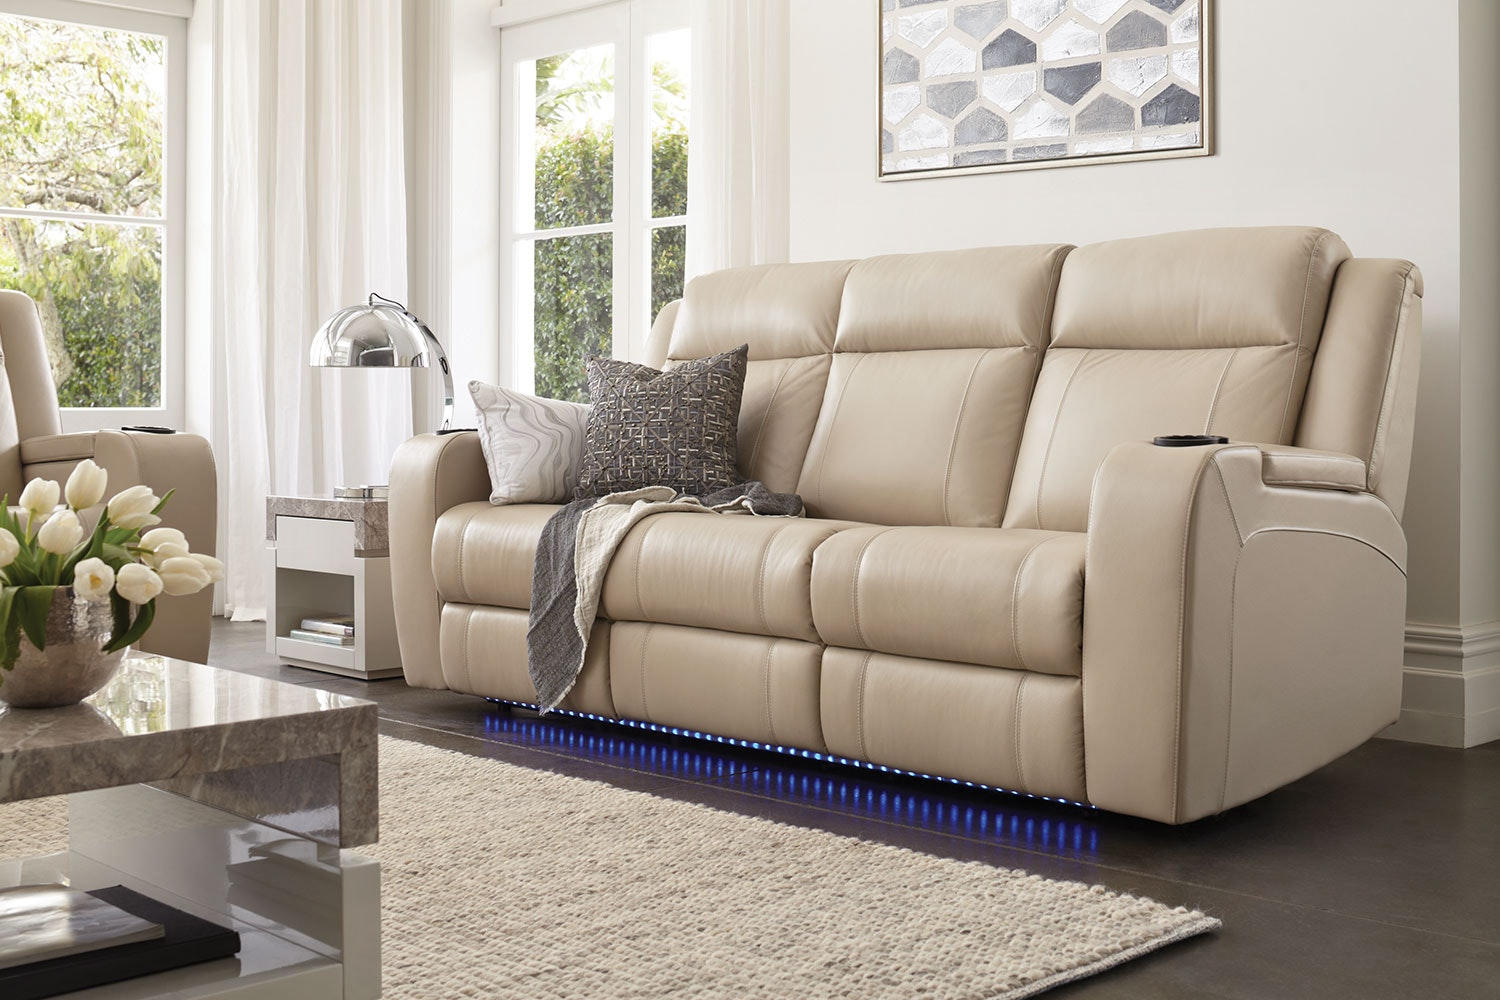 Marina 3 Seater Leather Recliner Sofa By Synargy ...